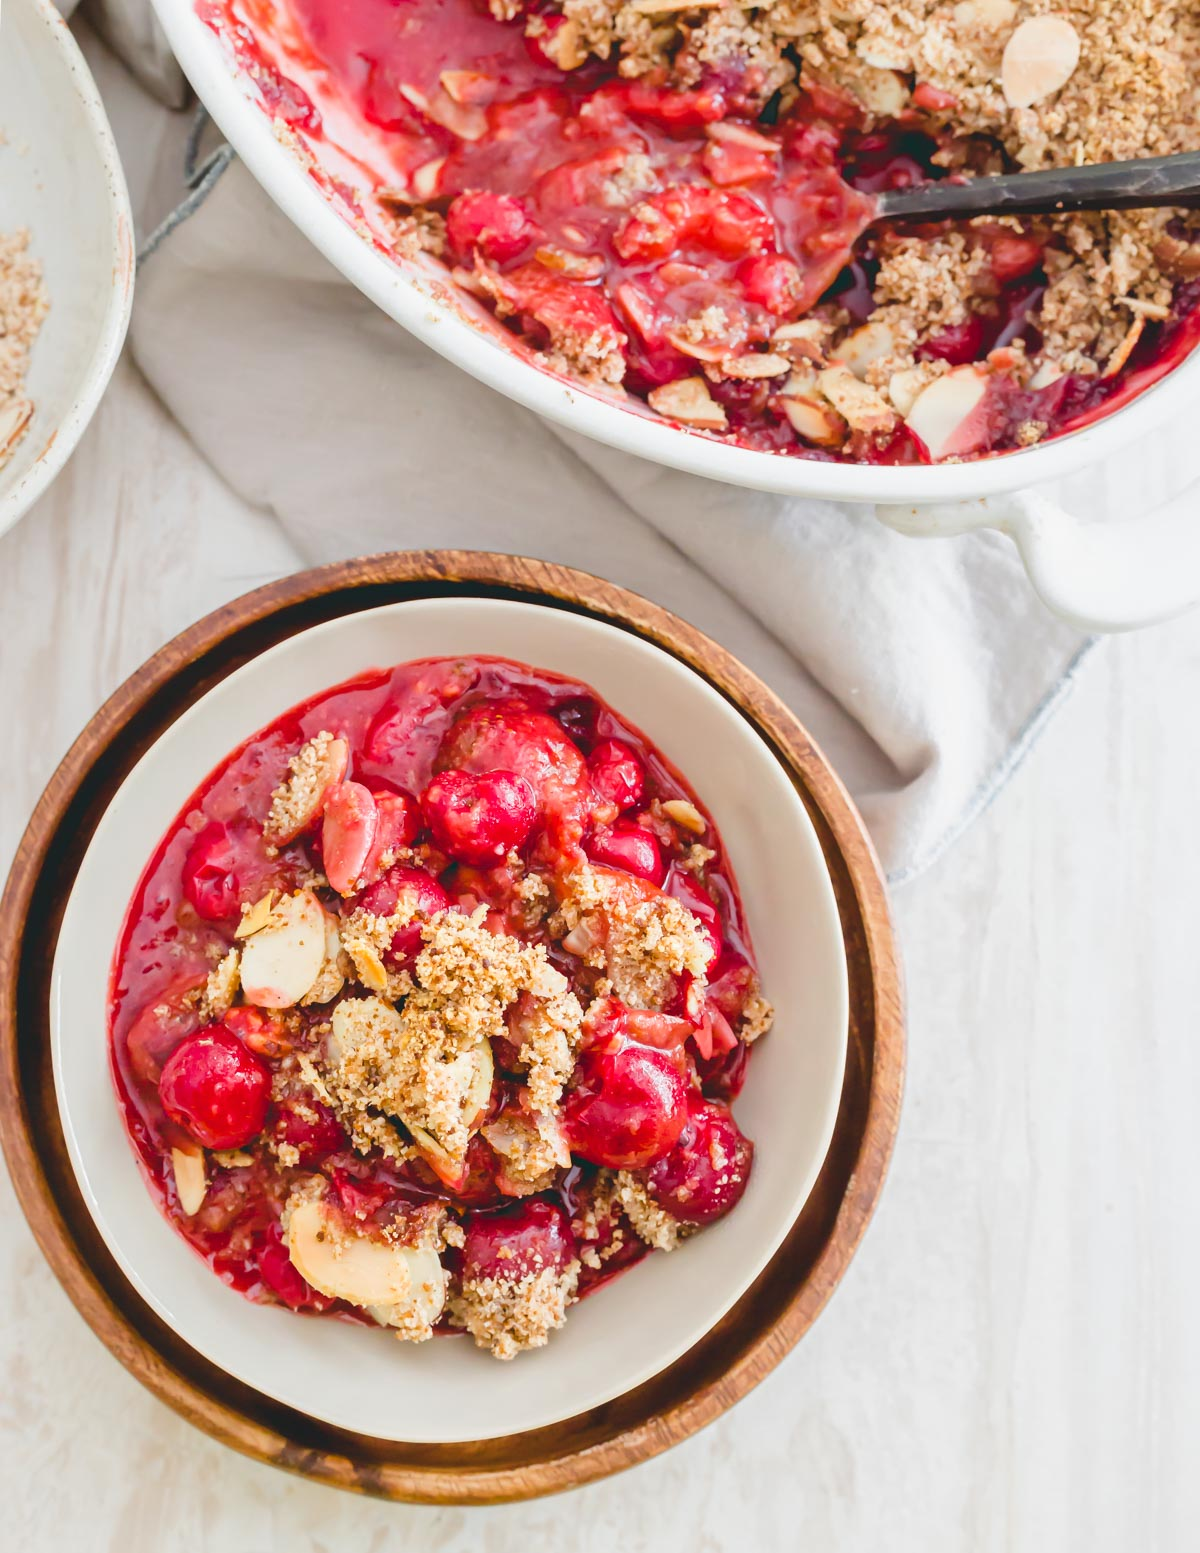 A serving of sour cherry crumble in a small bowl.